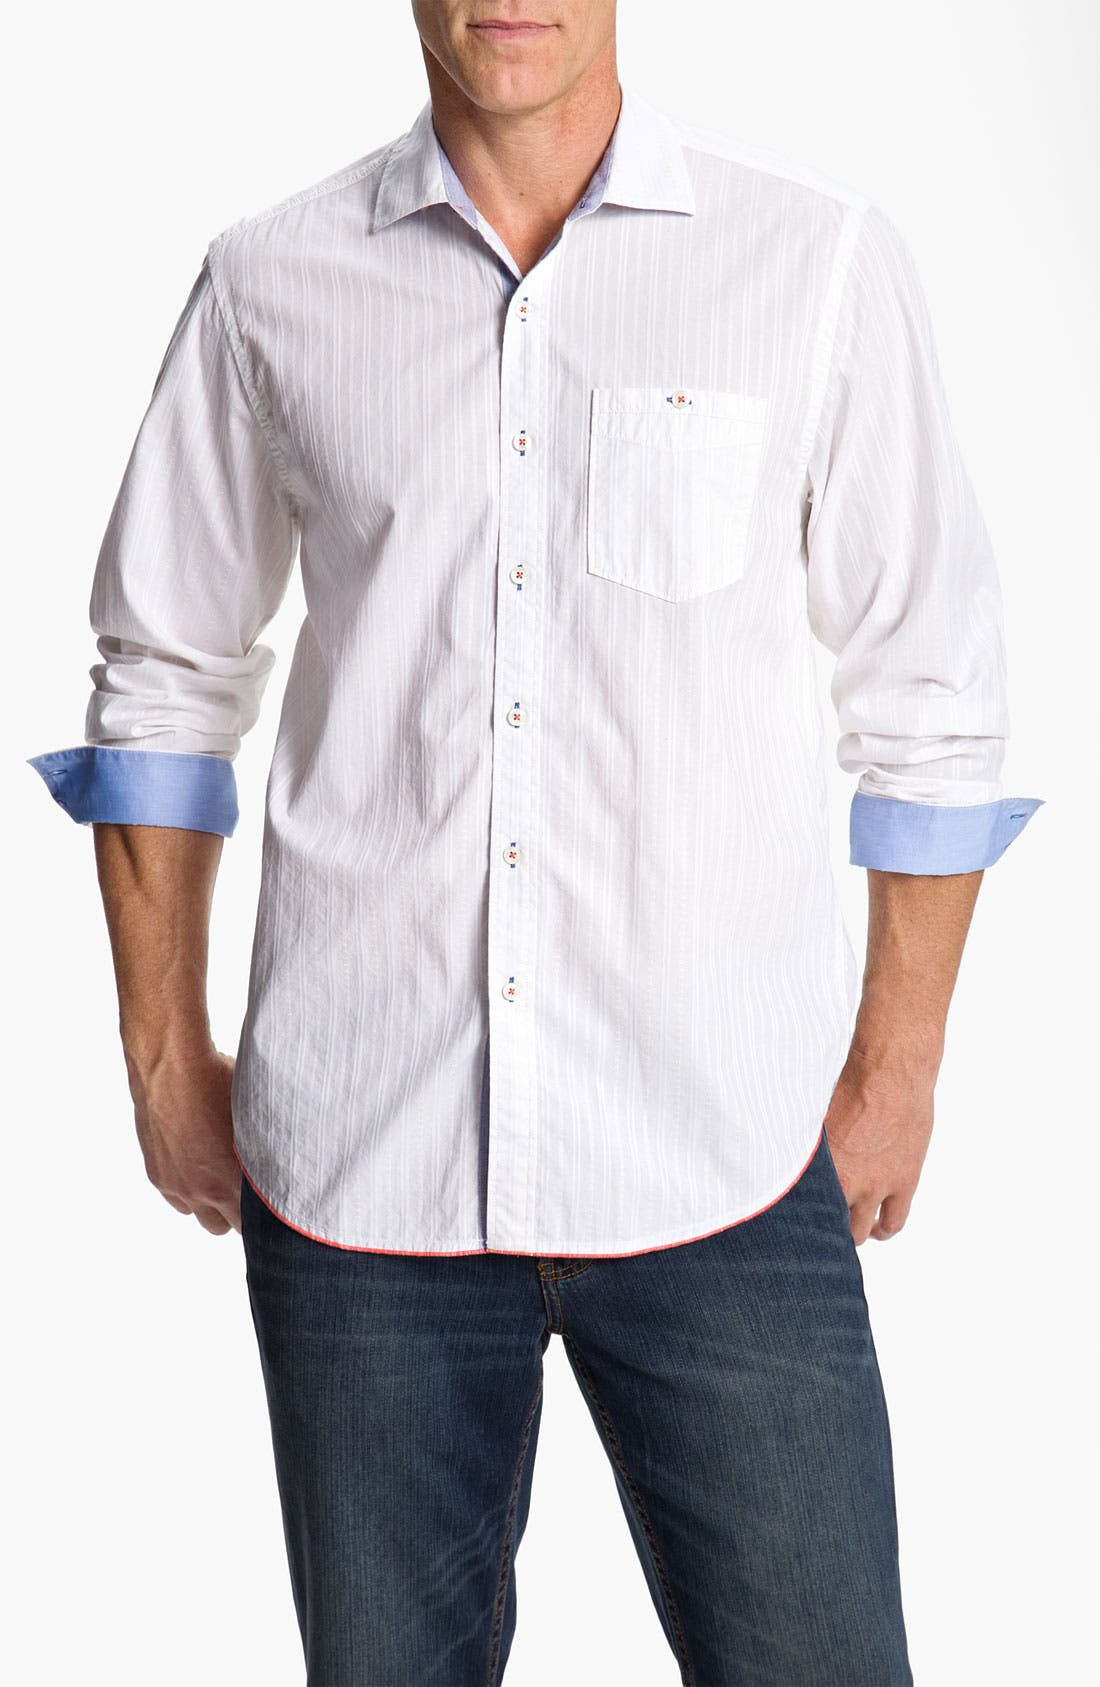 Alternate Image 1 Selected - Tommy Bahama Denim 'Destination Dobby' Sport Shirt